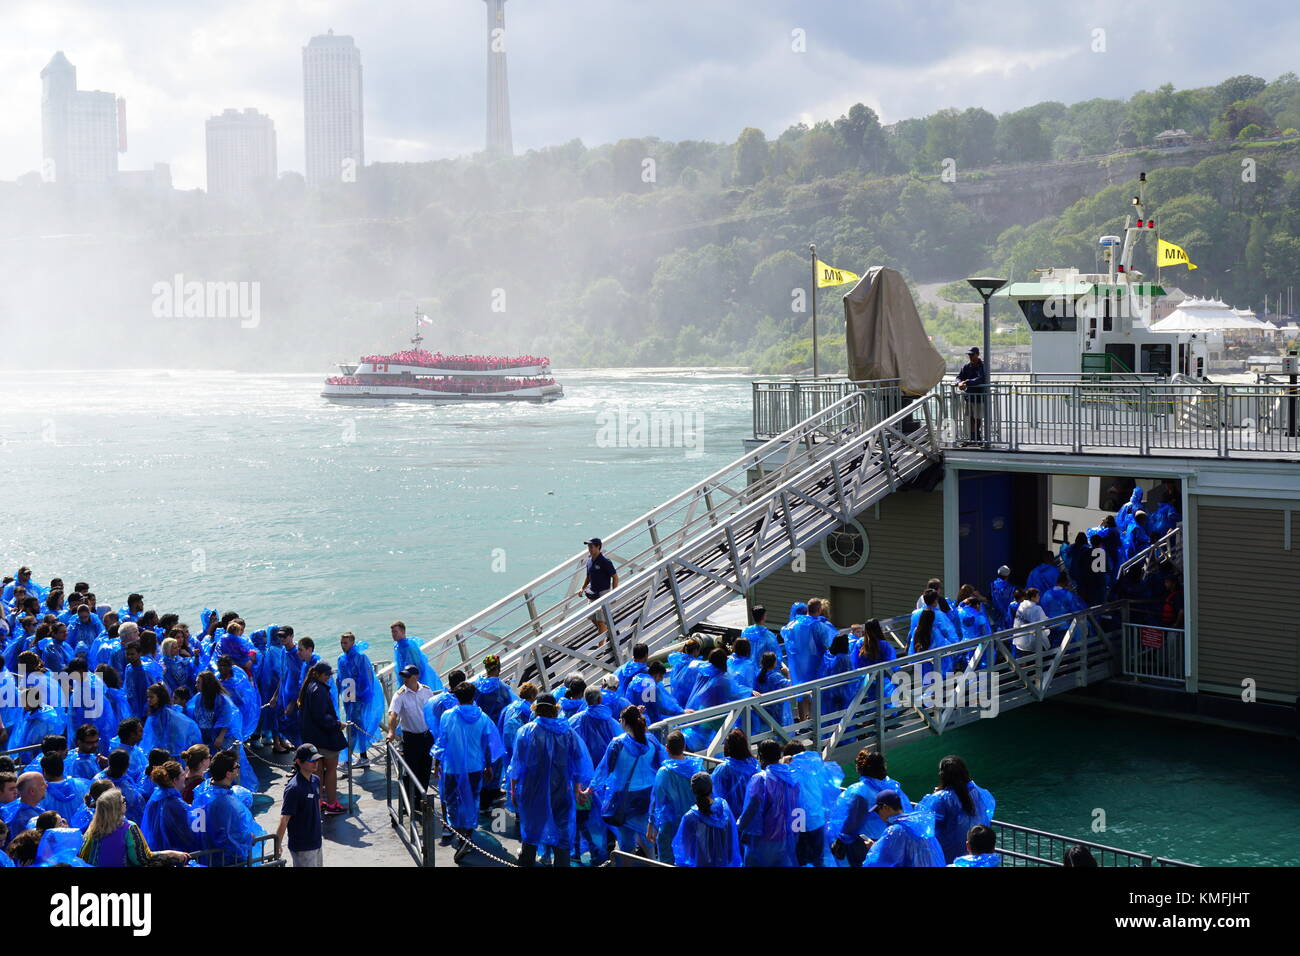 Visitors (tourists) boarding the Maid of the Mist ferry boat at Niagara Falls, New York, USA Stock Photo